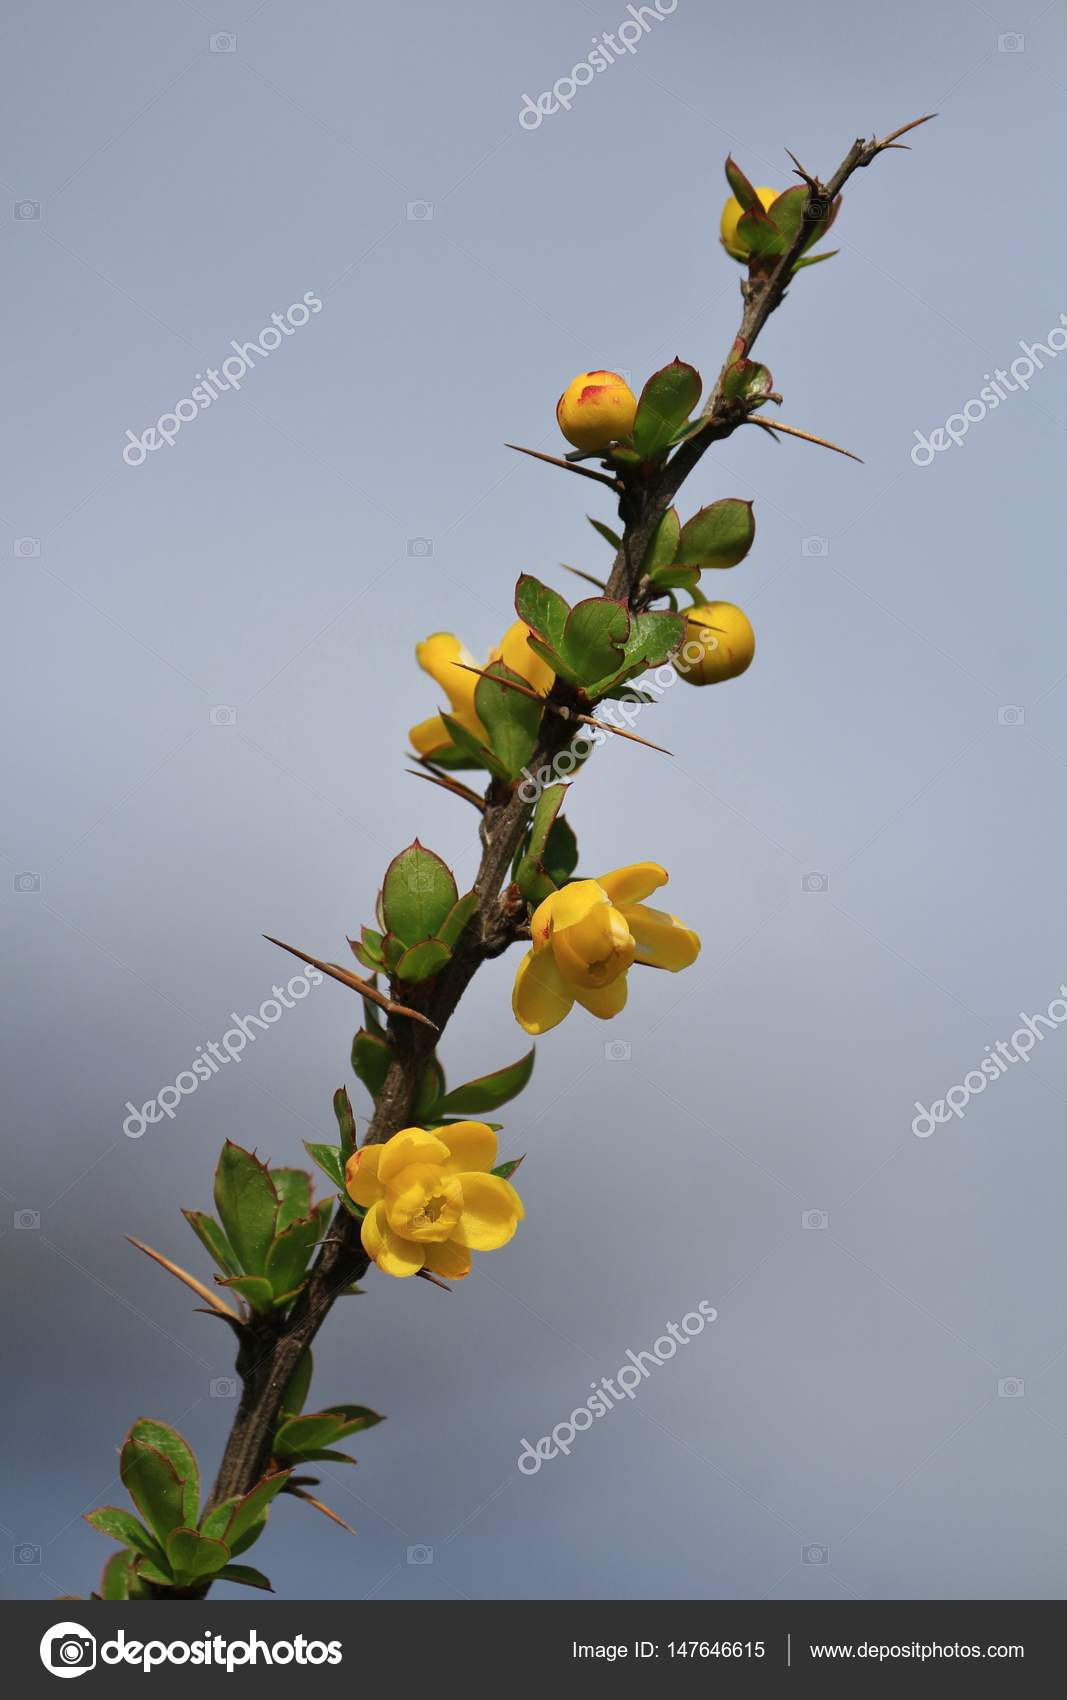 Thorny bush with little yellow flowers stock photo perreten thorny bush with little yellow flowers stock photo mightylinksfo